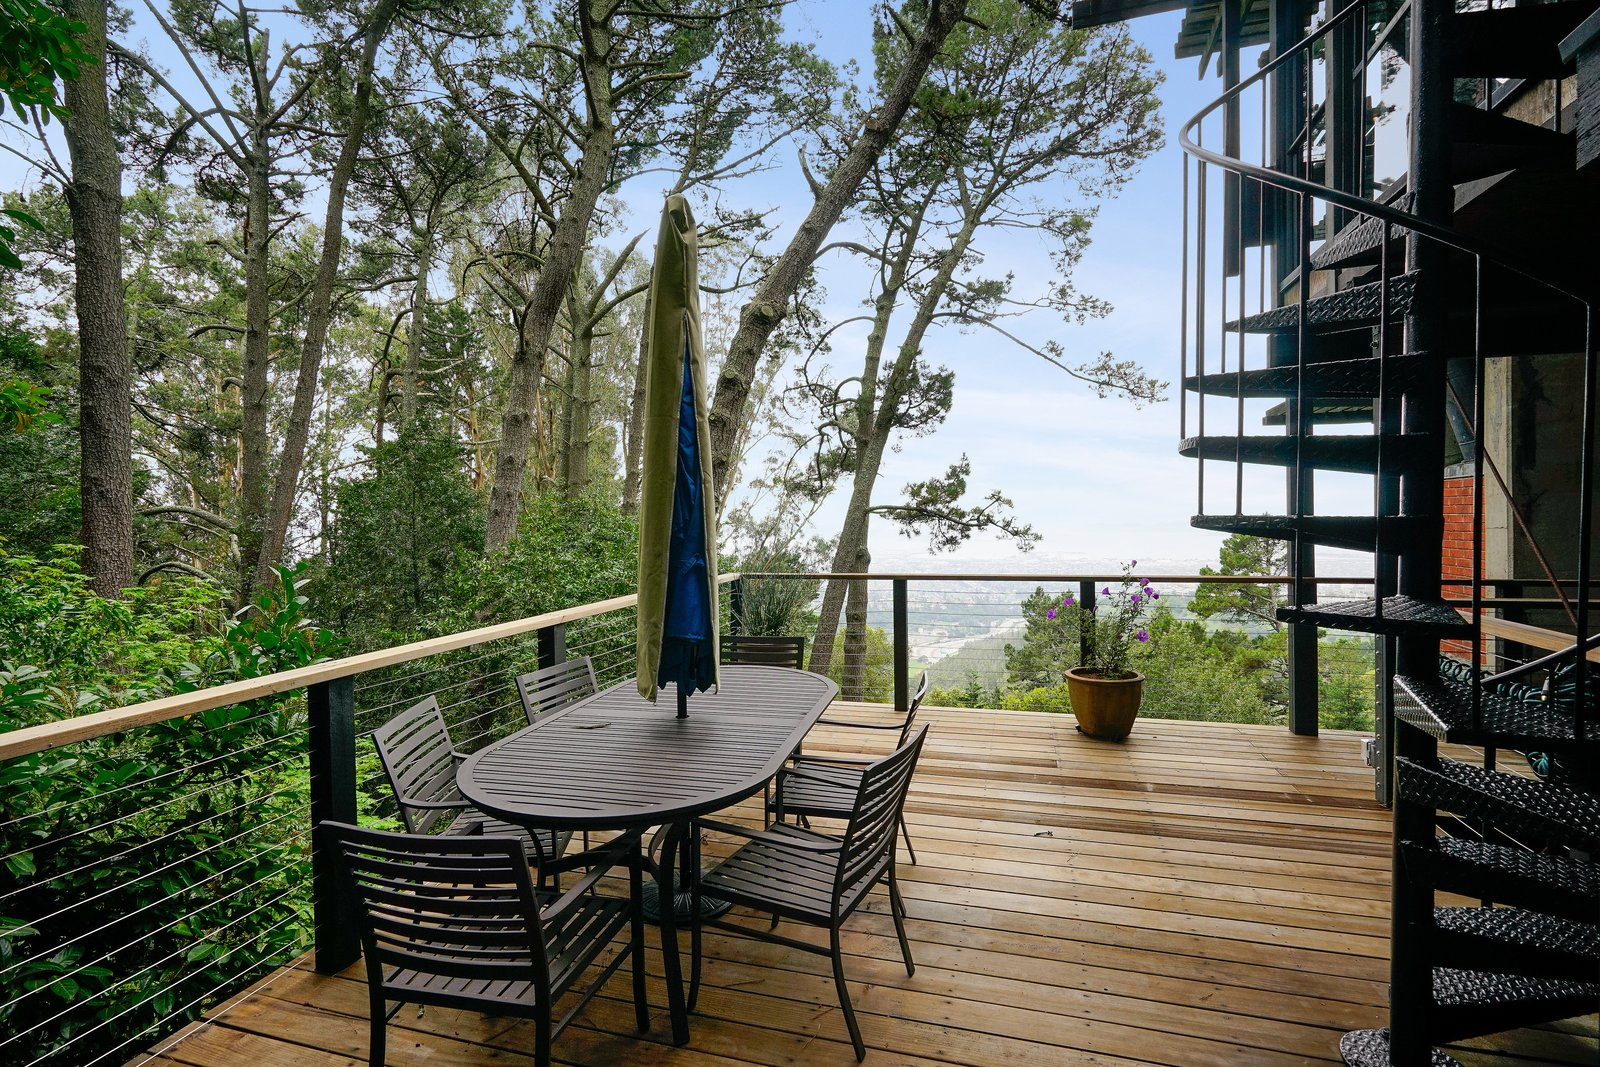 The decks and balconies that take full advantage of the sylvan setting and the stunning views.